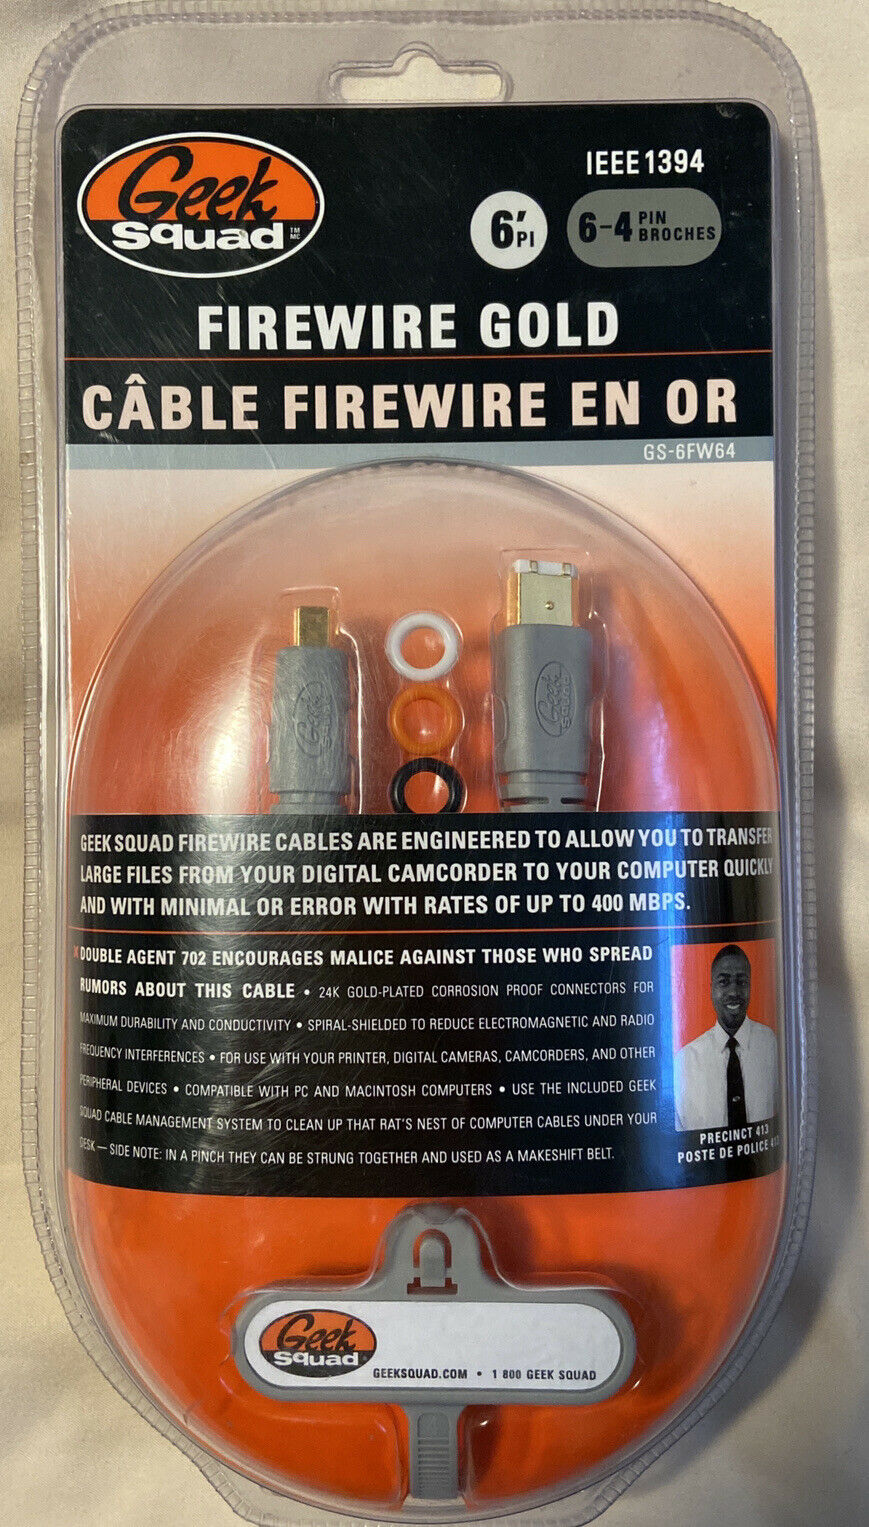 NEW Geek Squad Firewire Gold Cable IEEE 1394 6 Pin to 4 Pin - 6 ft. GS-6FW64